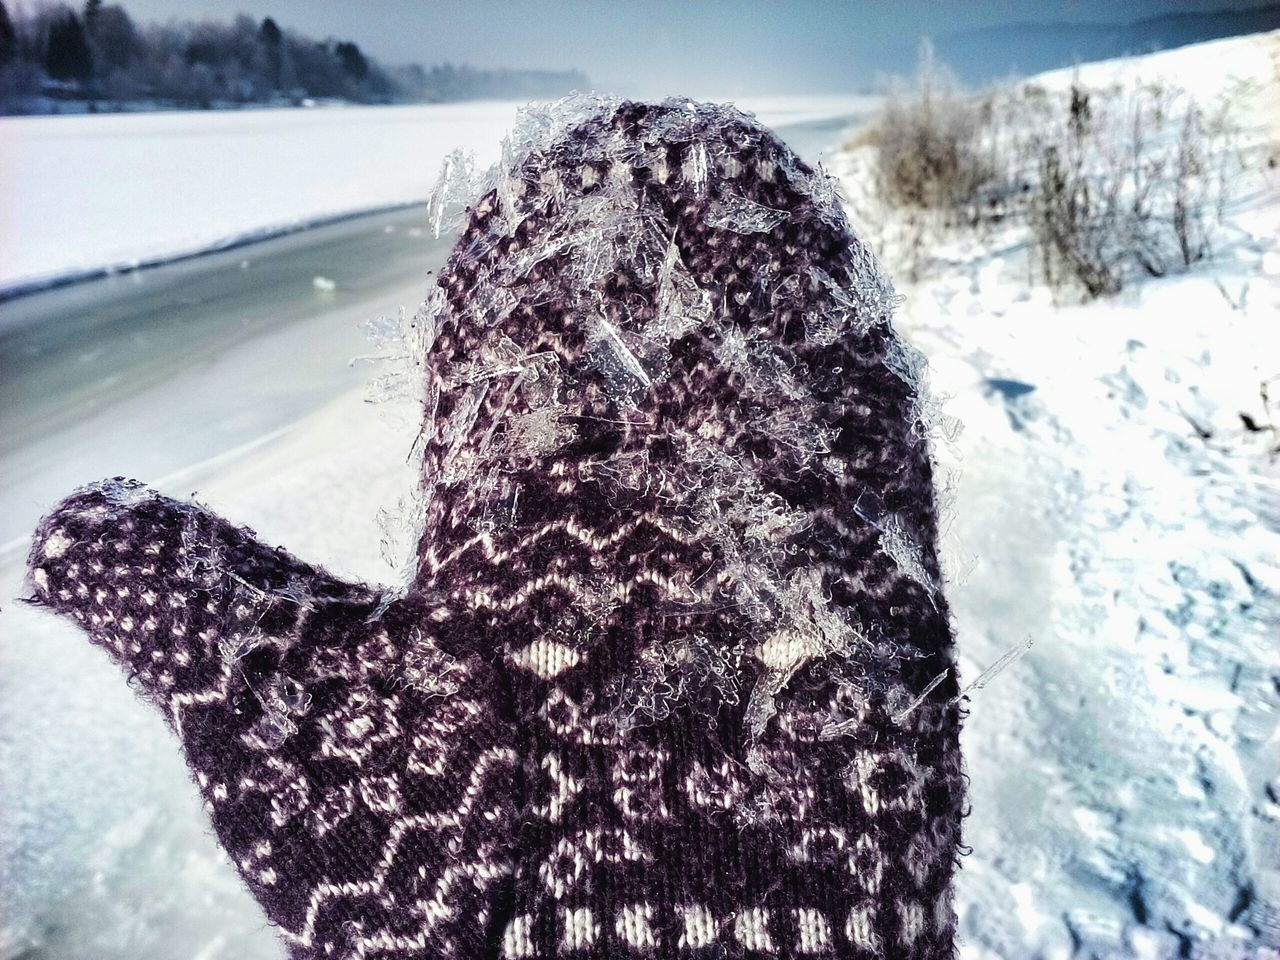 Winter Warm Clothing Outdoors Close-up Patterns Winter Glove Pieces Of Ice Nature Pattens Textile Textures Man And Nature Cold Temperature Riverside